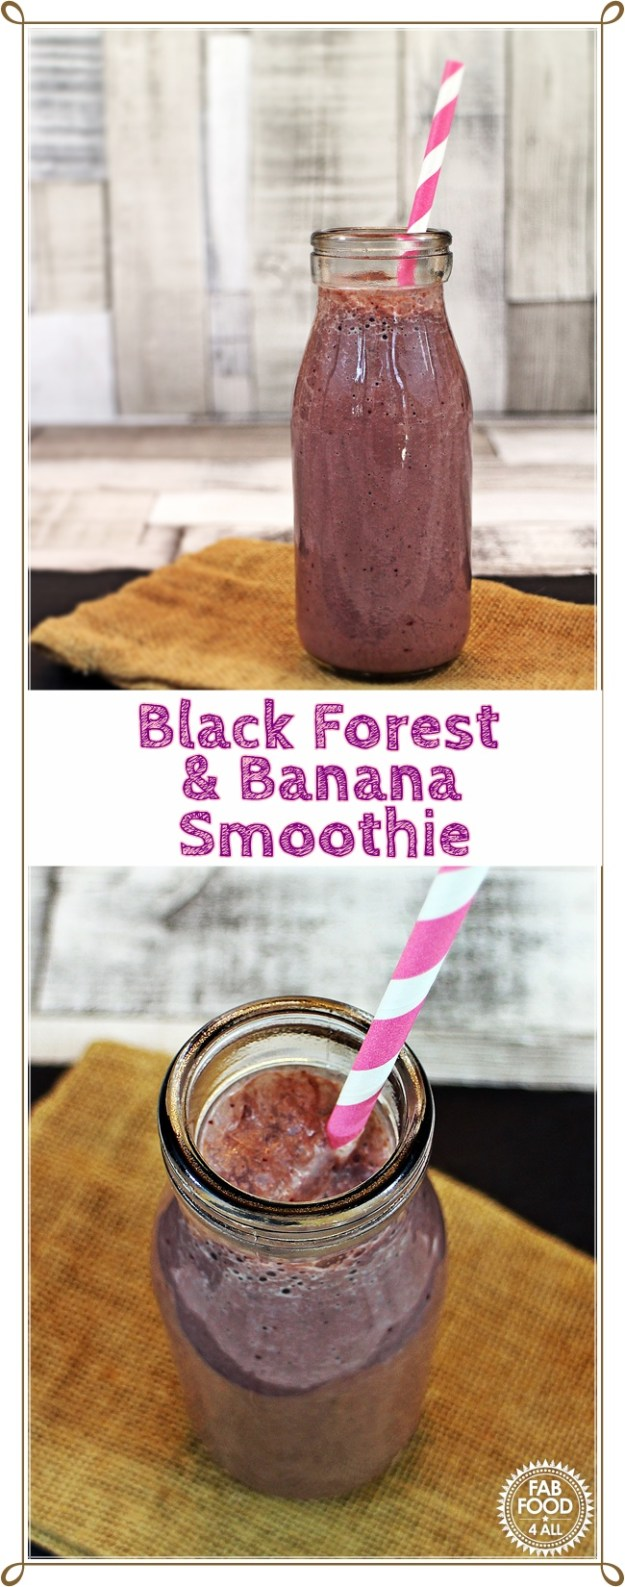 Black Forest & Banana Smoothie - Fab Food 4 All